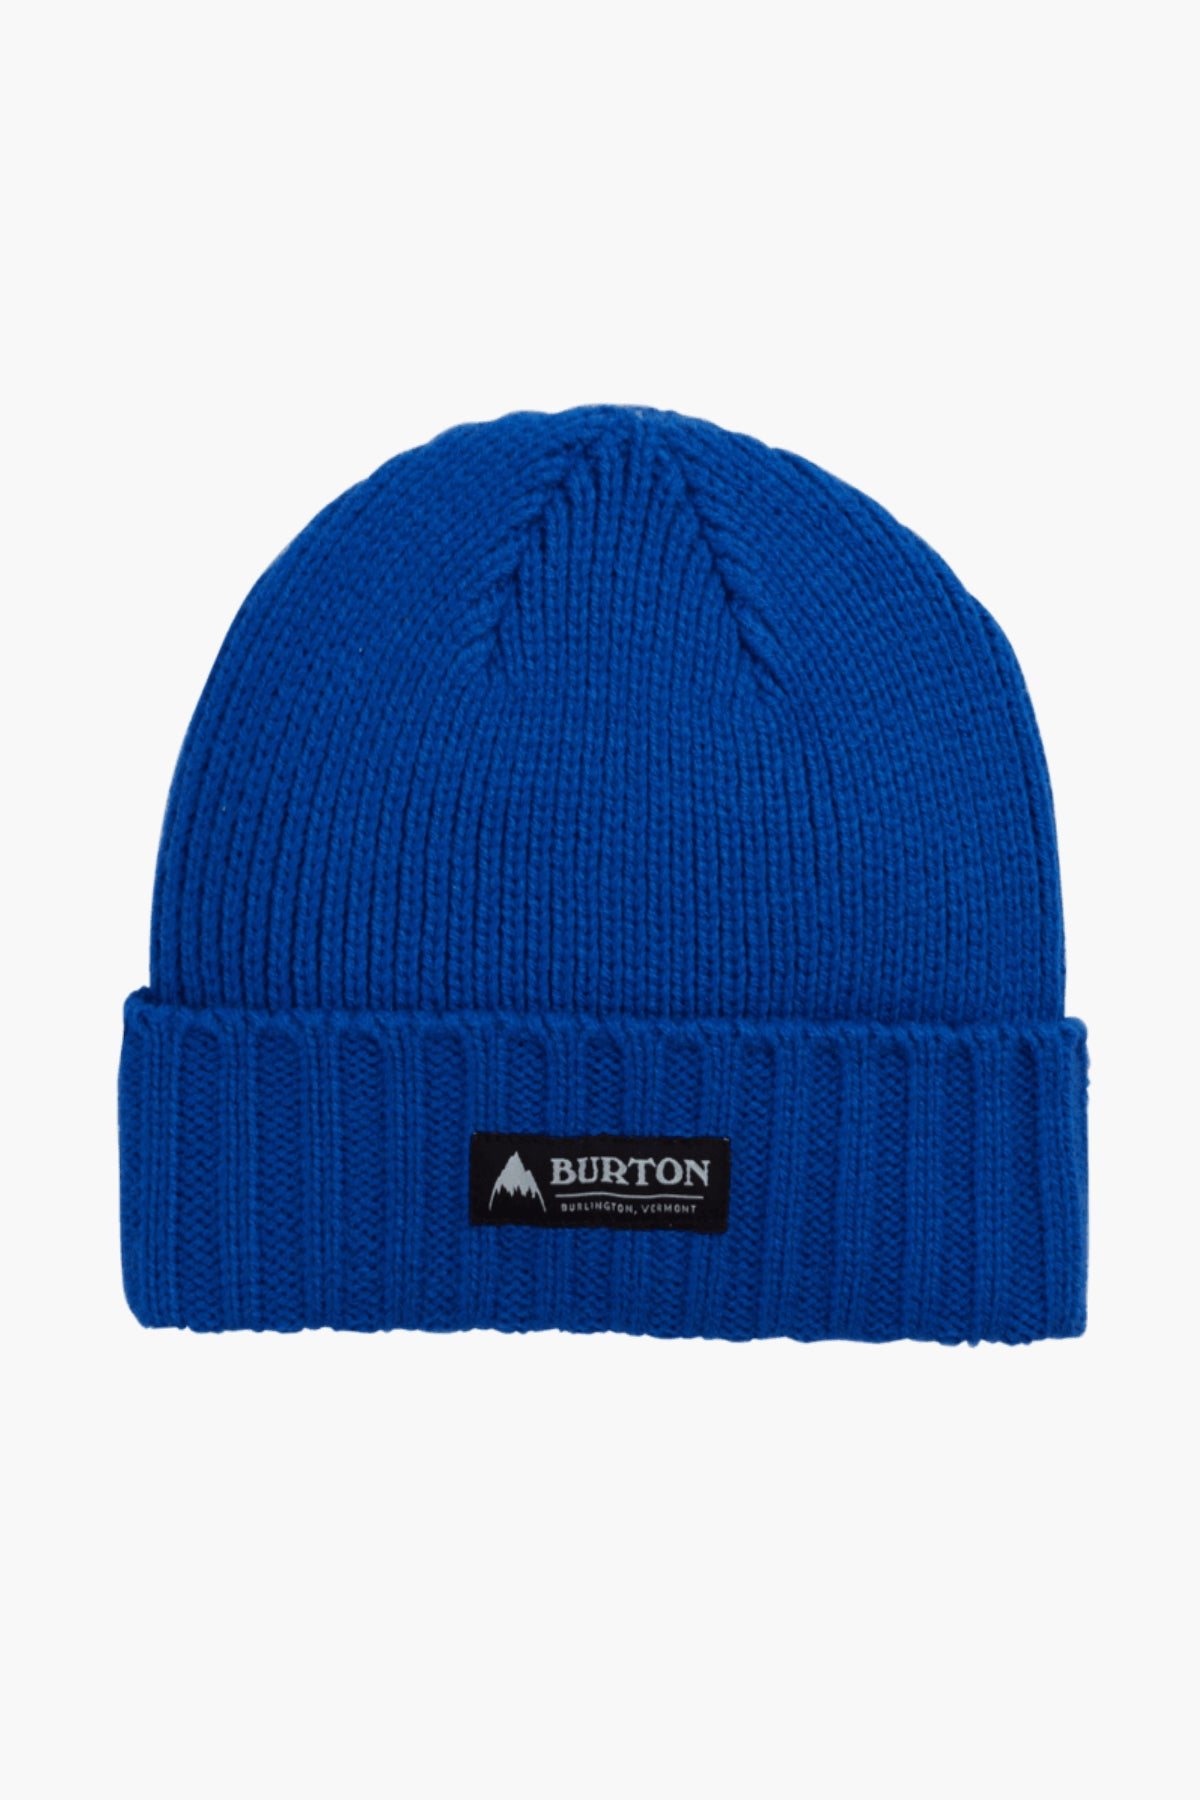 Burton Skully Kids Hat - Lapis Blue